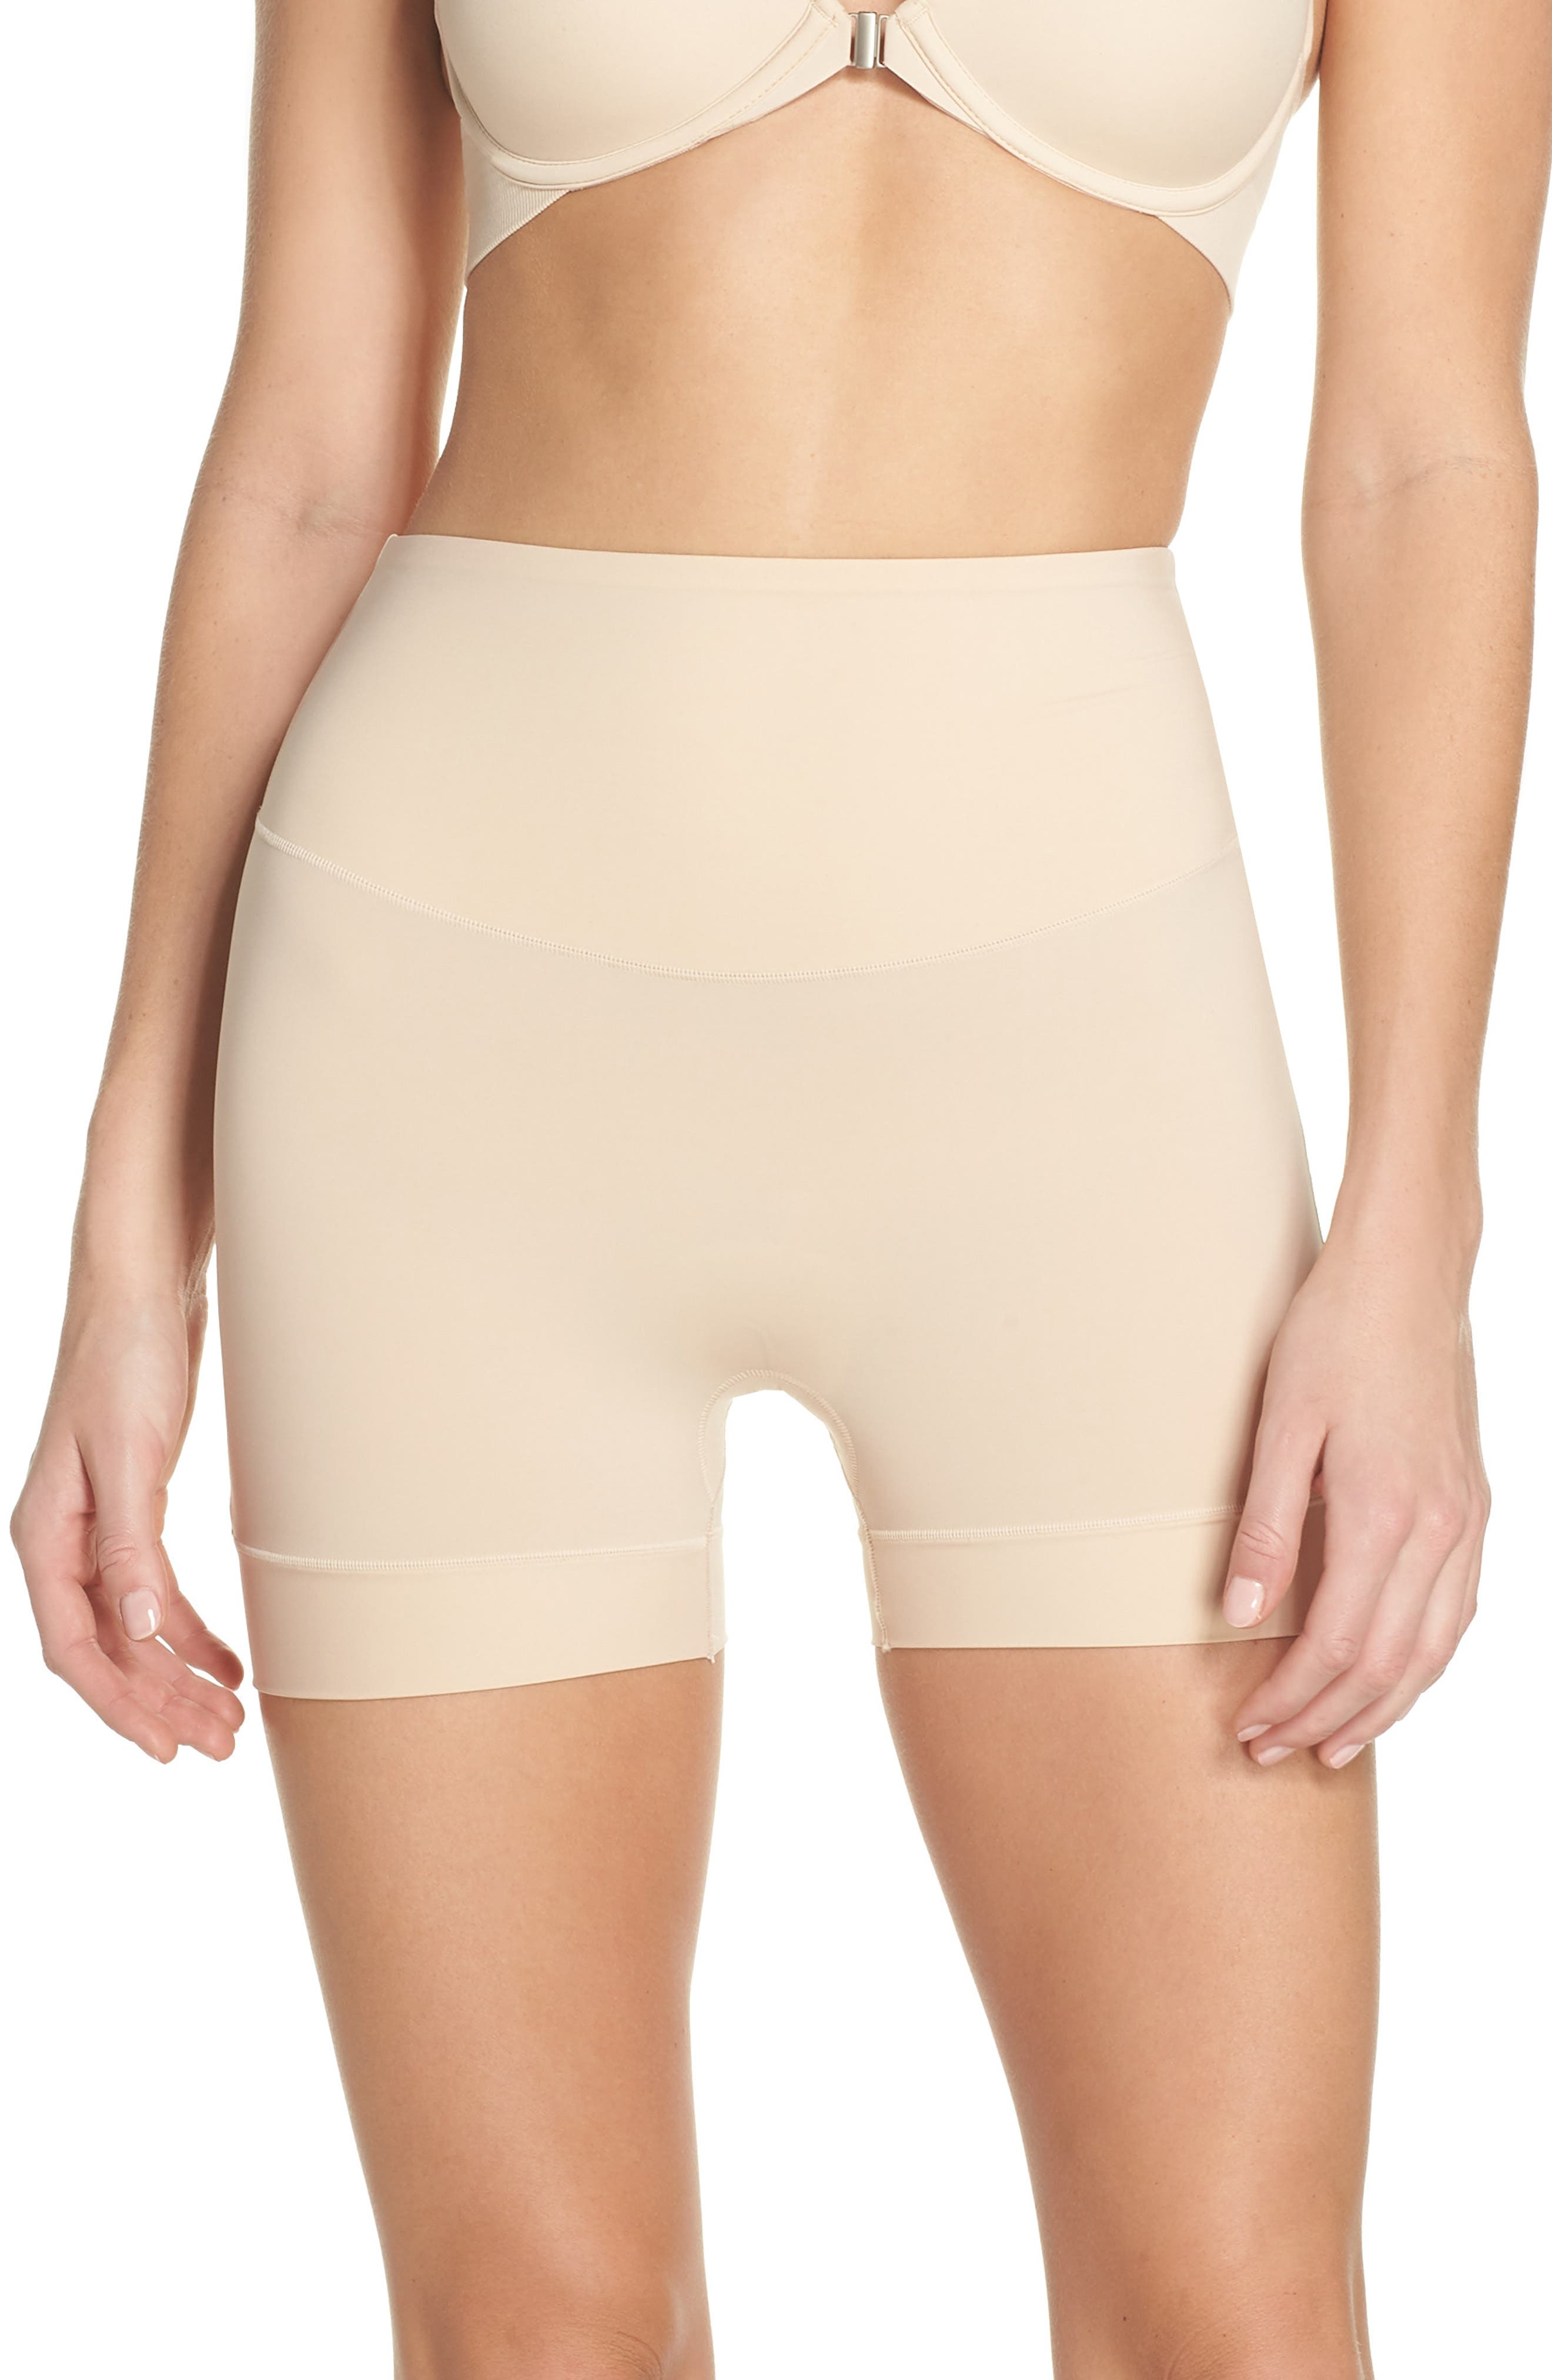 Tummie Tamers Mid Waist Shaping Shorts,                         Main,                         color, Frappe